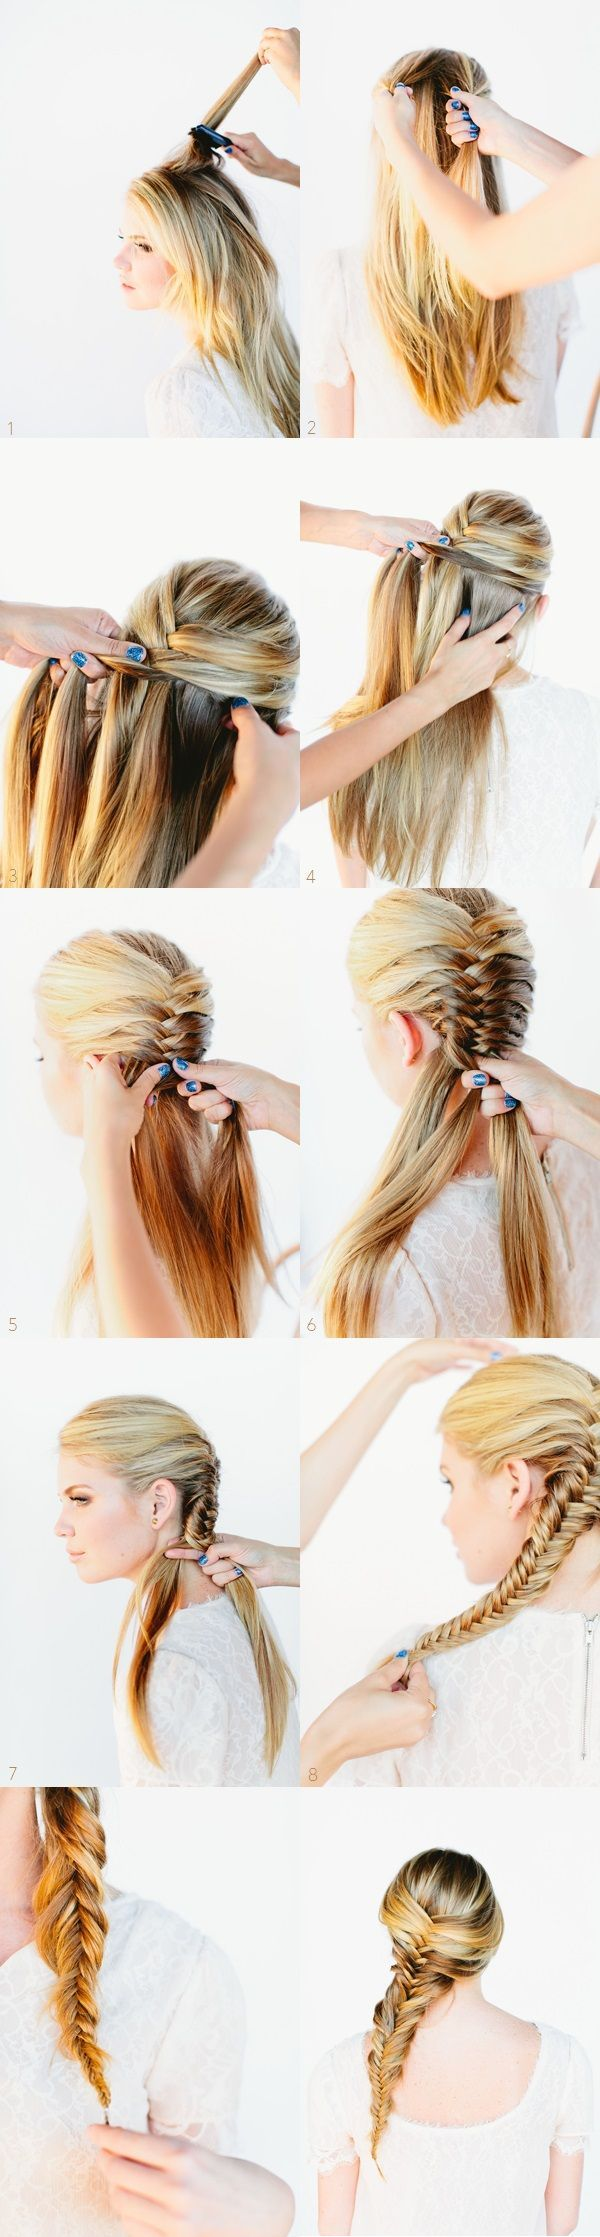 16 quick hairstyle tutorials you should know - #hairstyle #quick #should #tutorials - #new